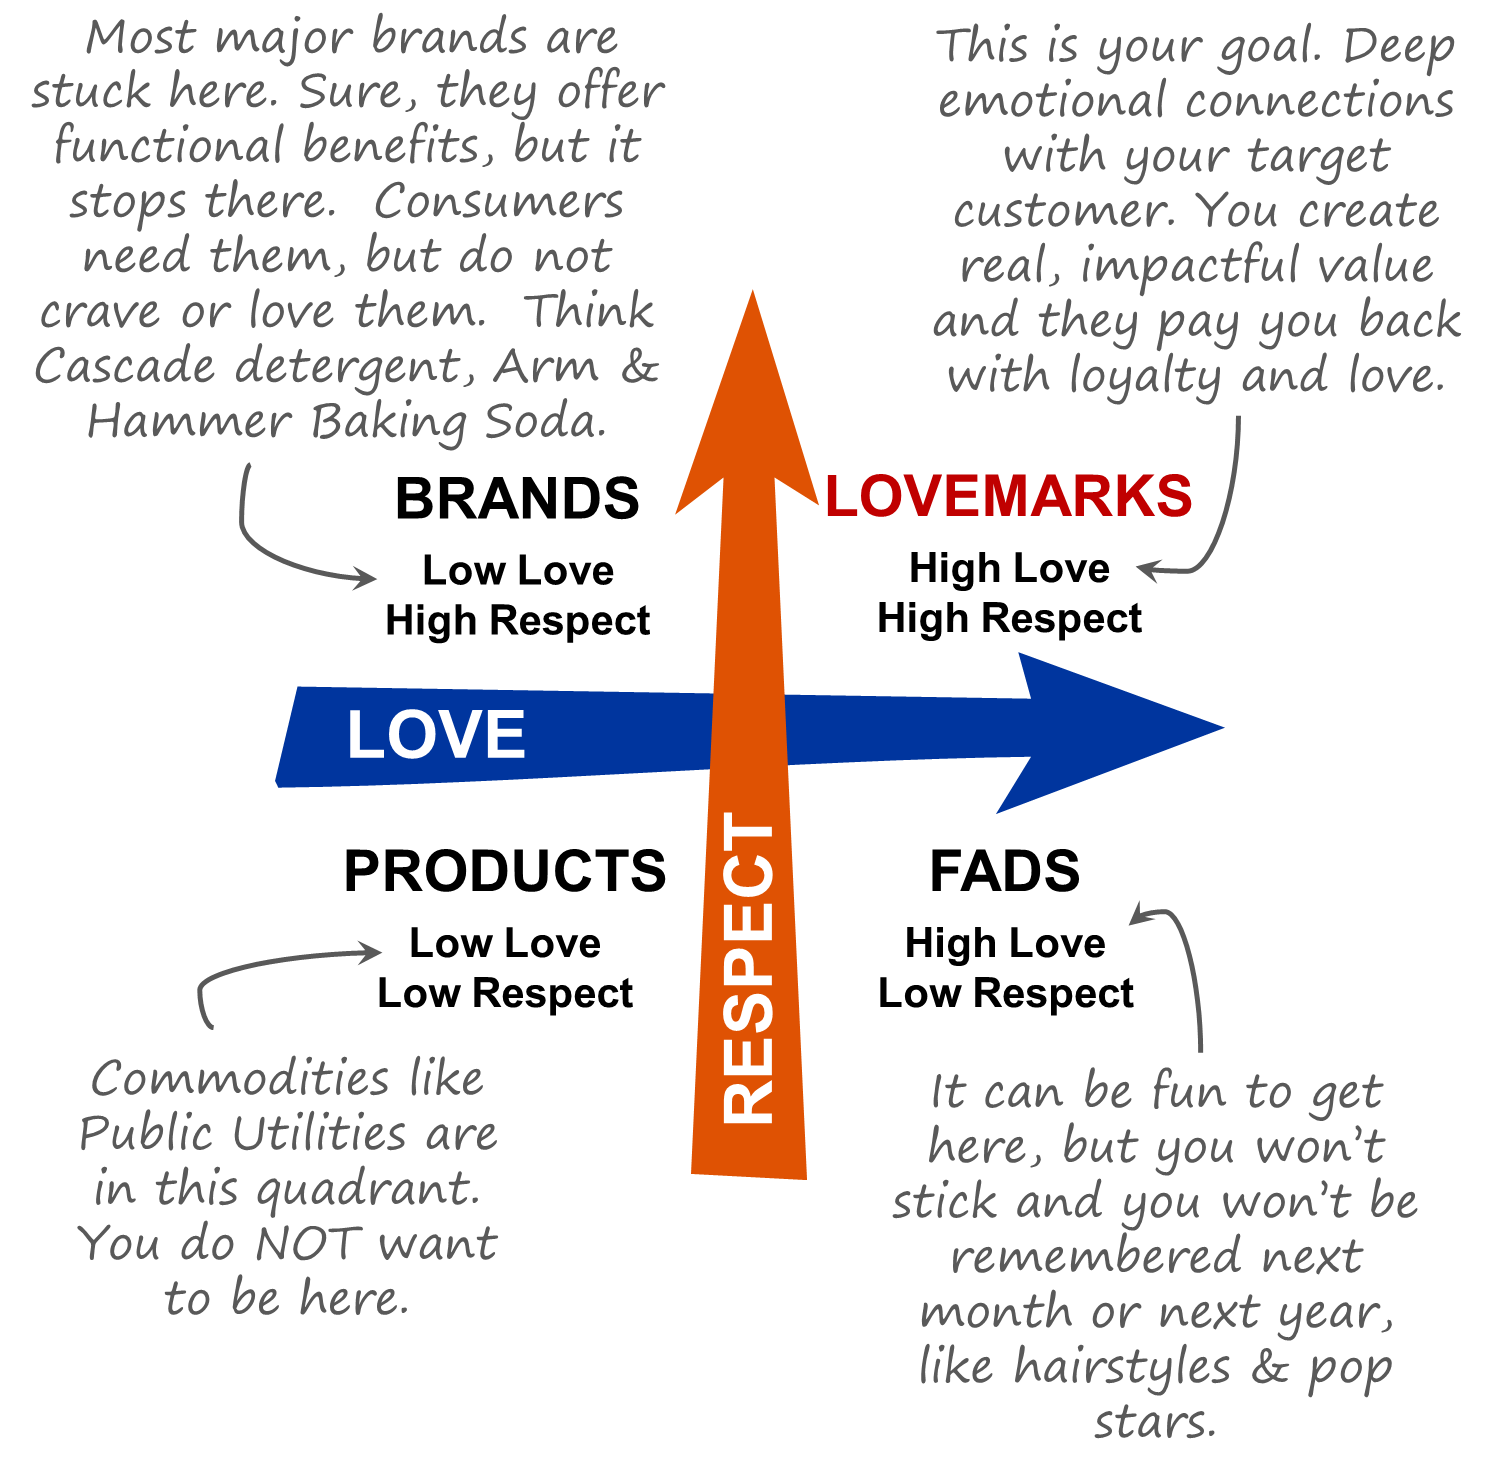 The Idea and meaning of Lovemarks